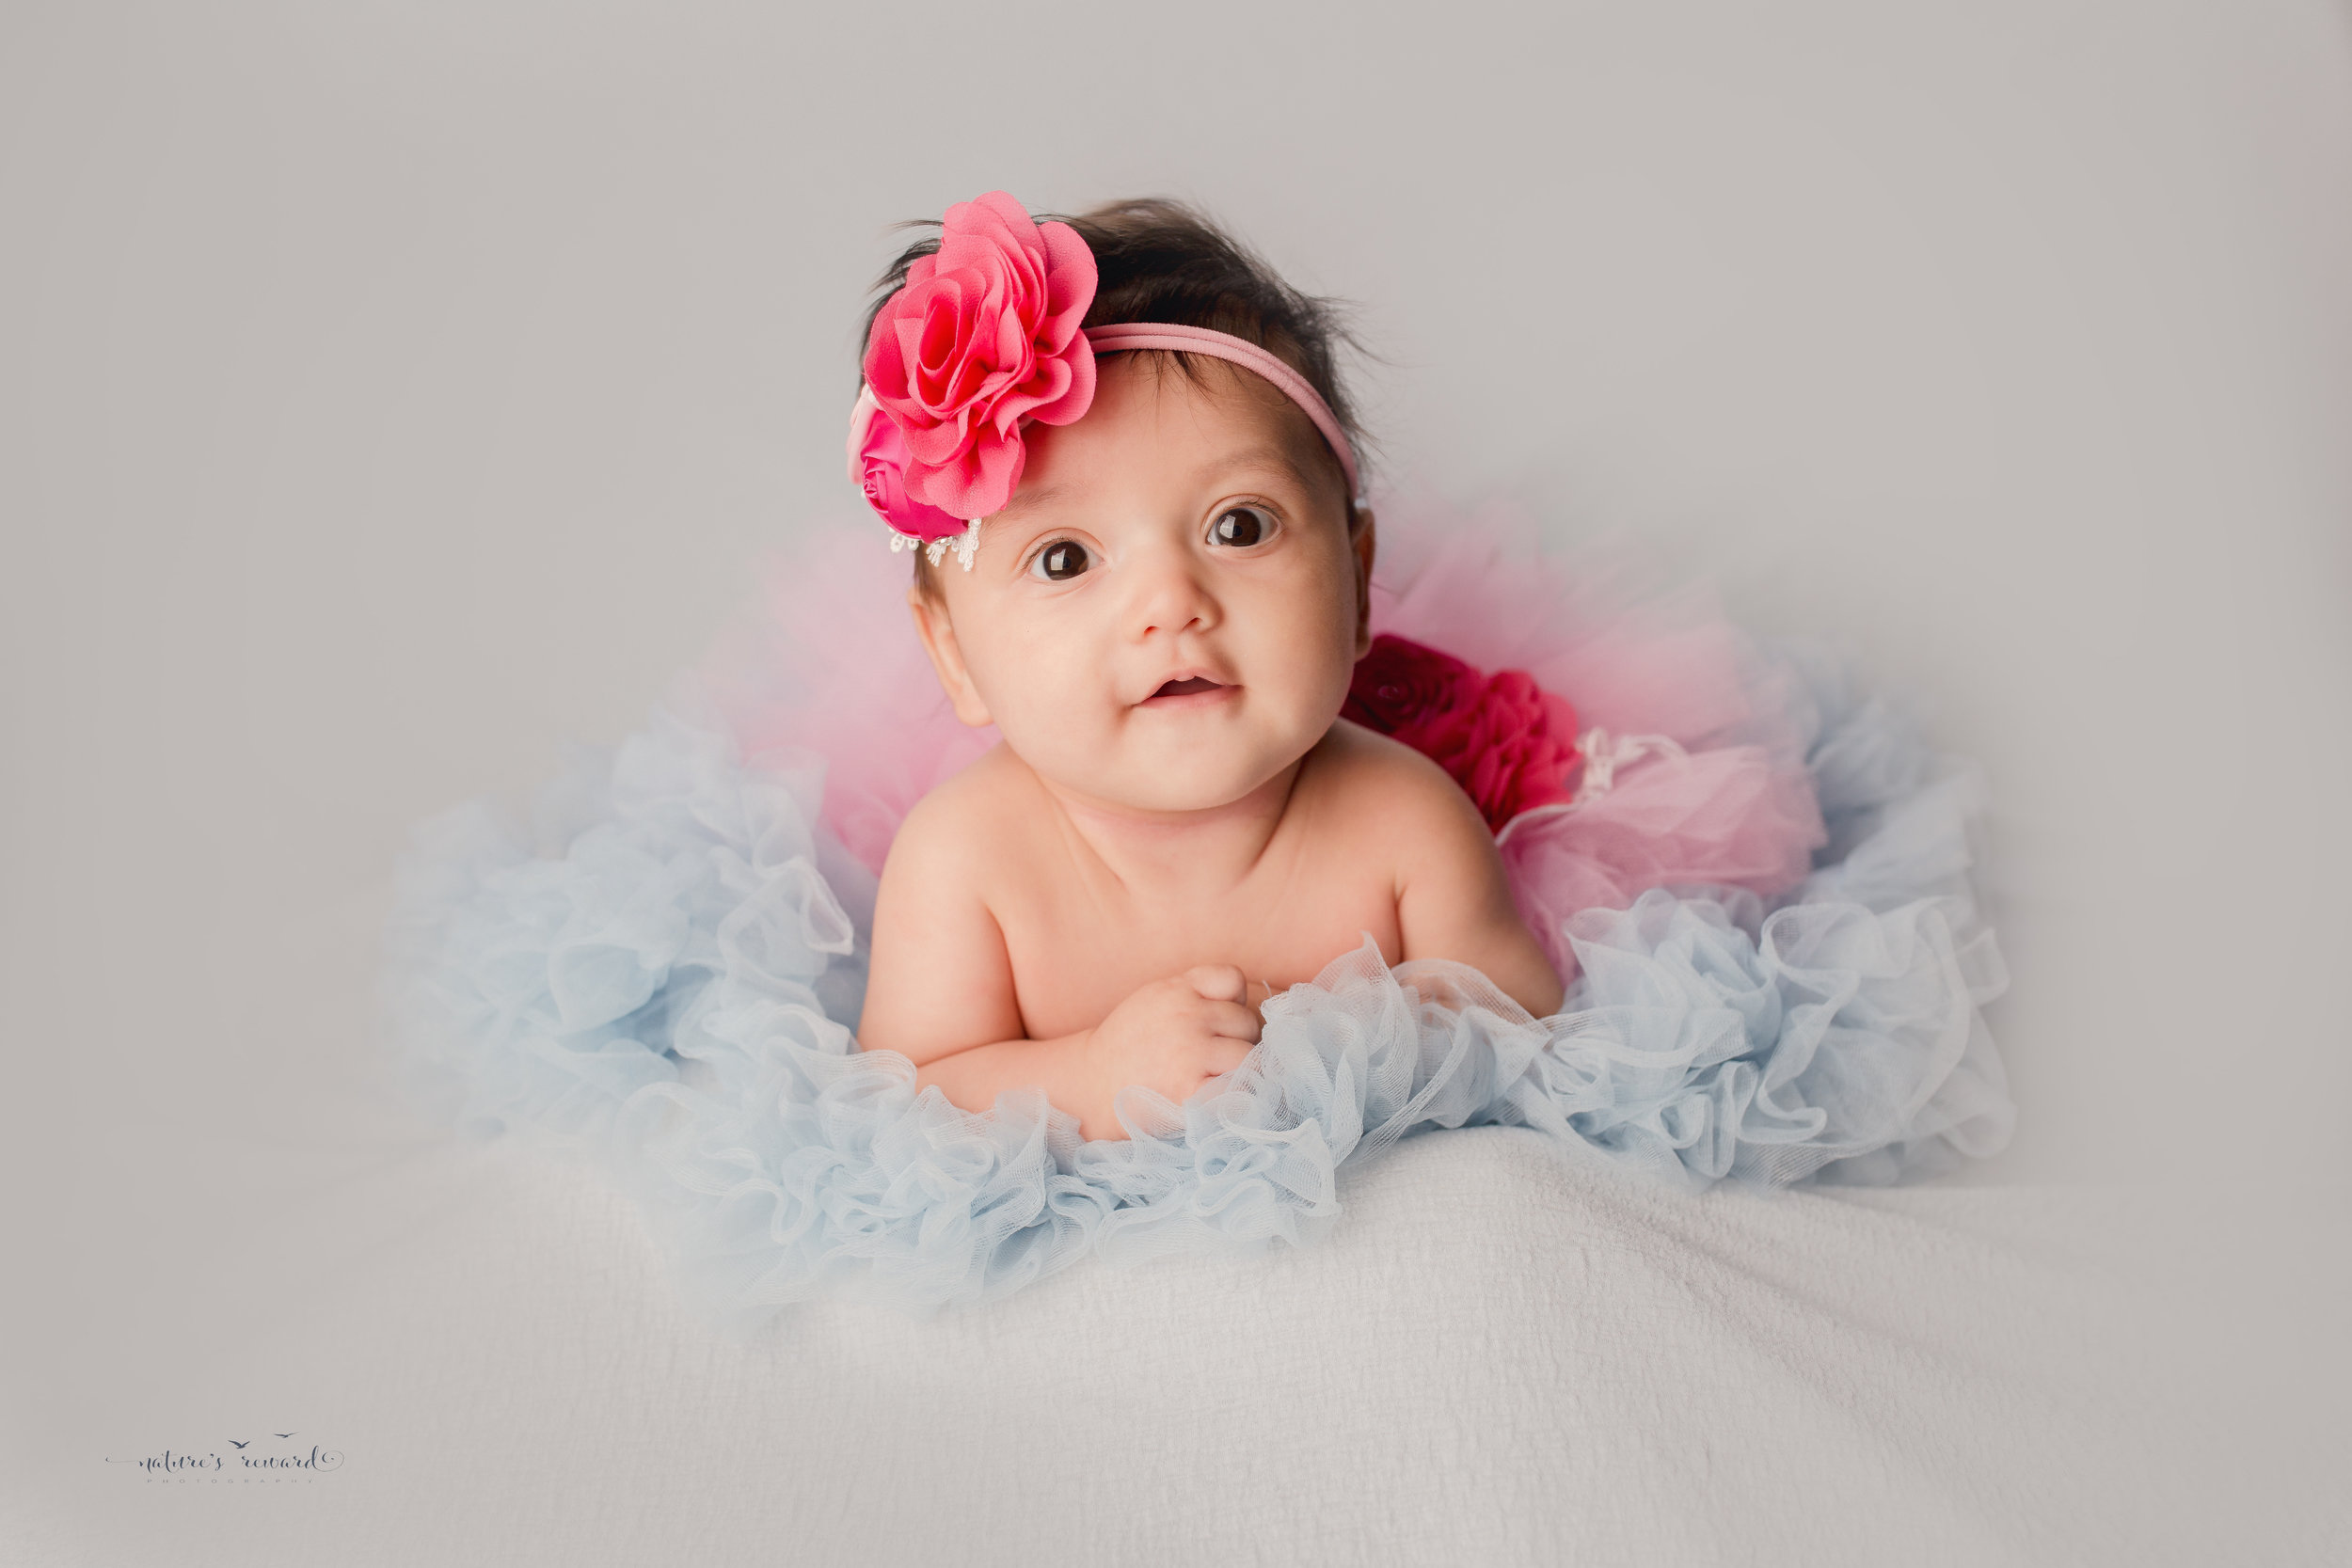 10 week old baby girl in her tutu- A Portrait By Nature's Reward Photography